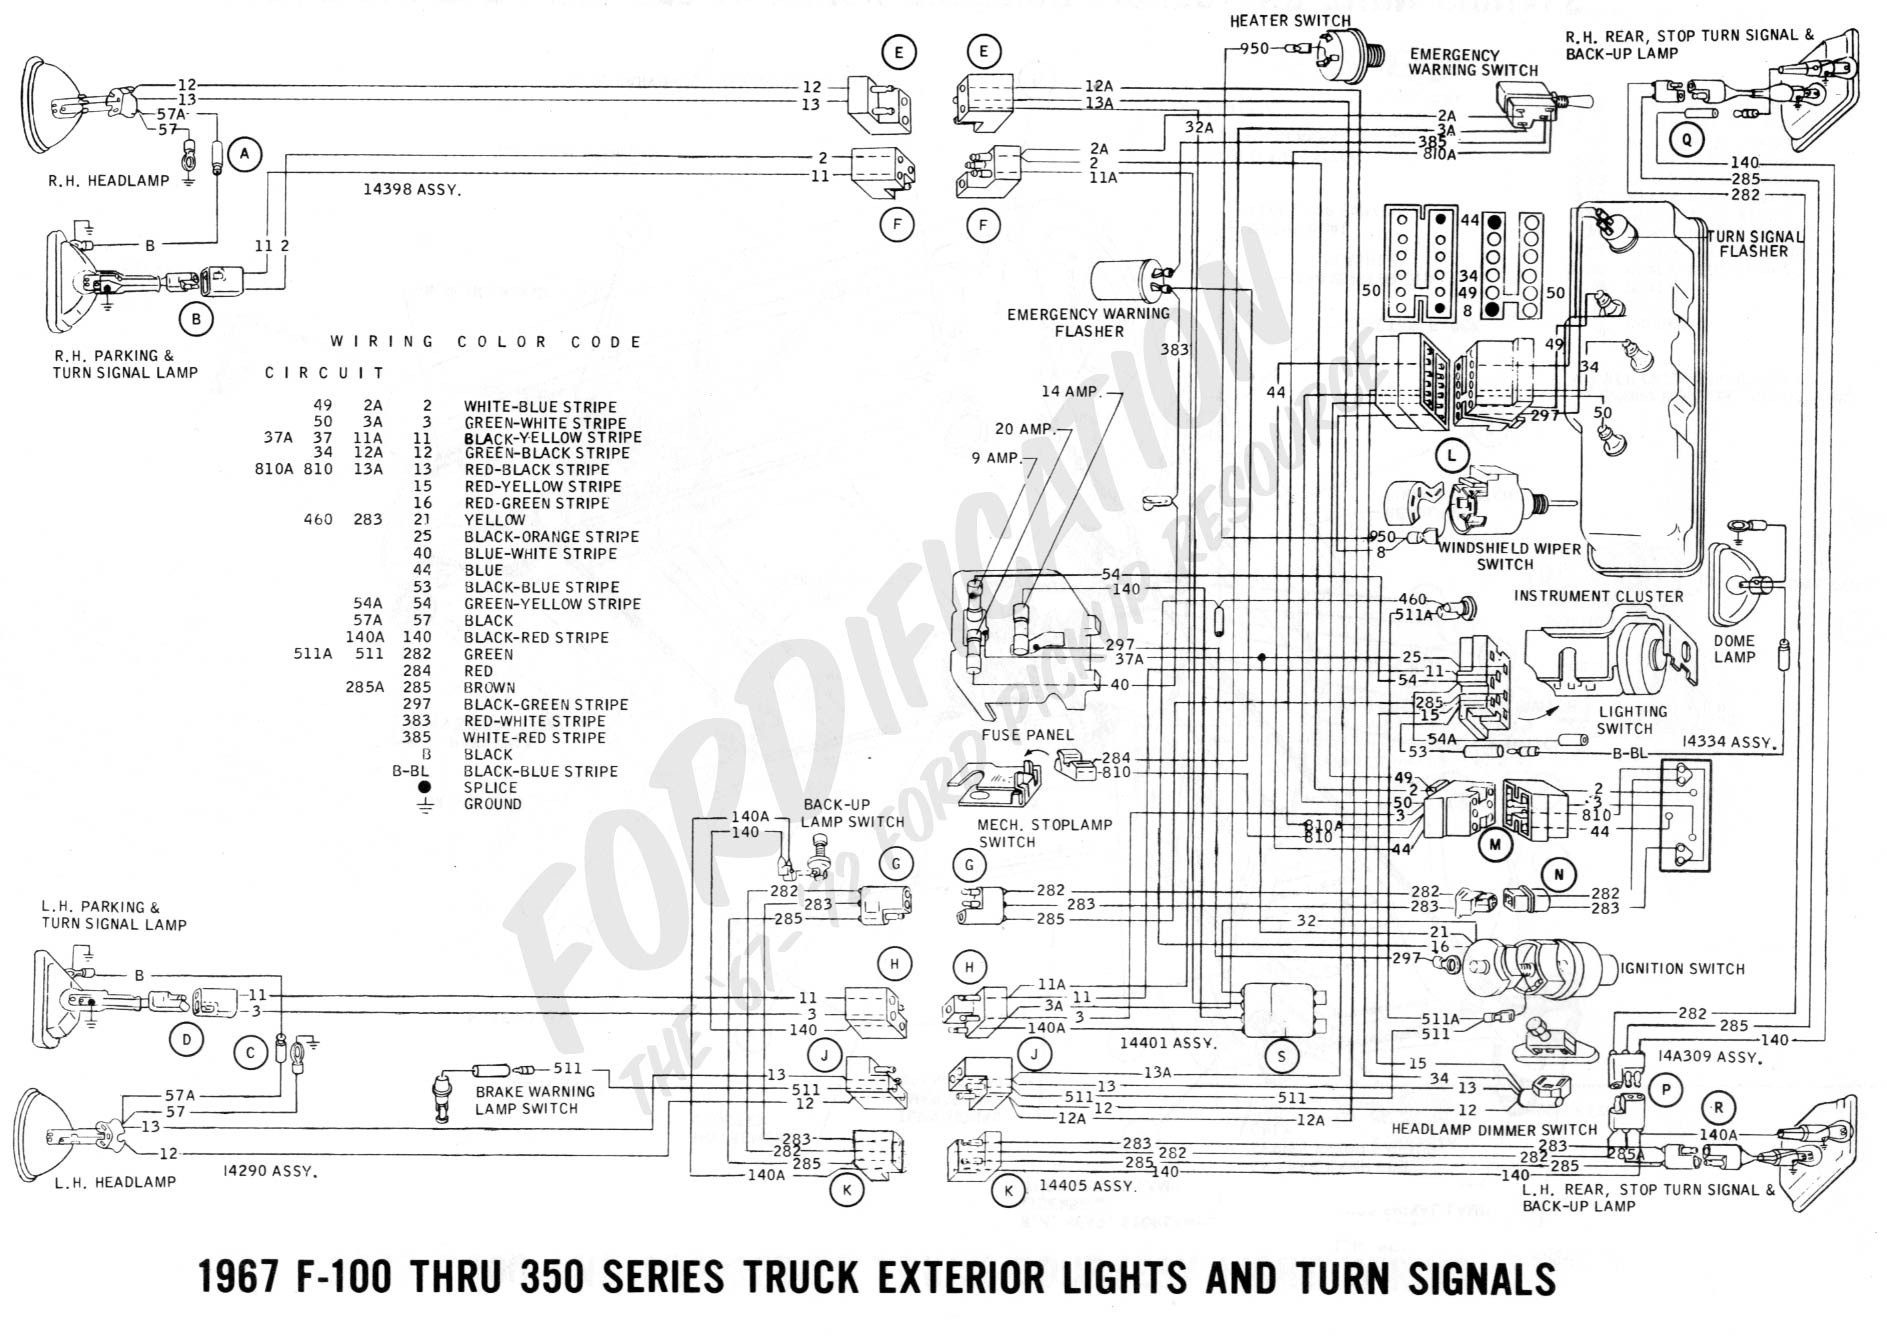 1968 ford torino ignition wiring diagram  u2022 wiring diagram